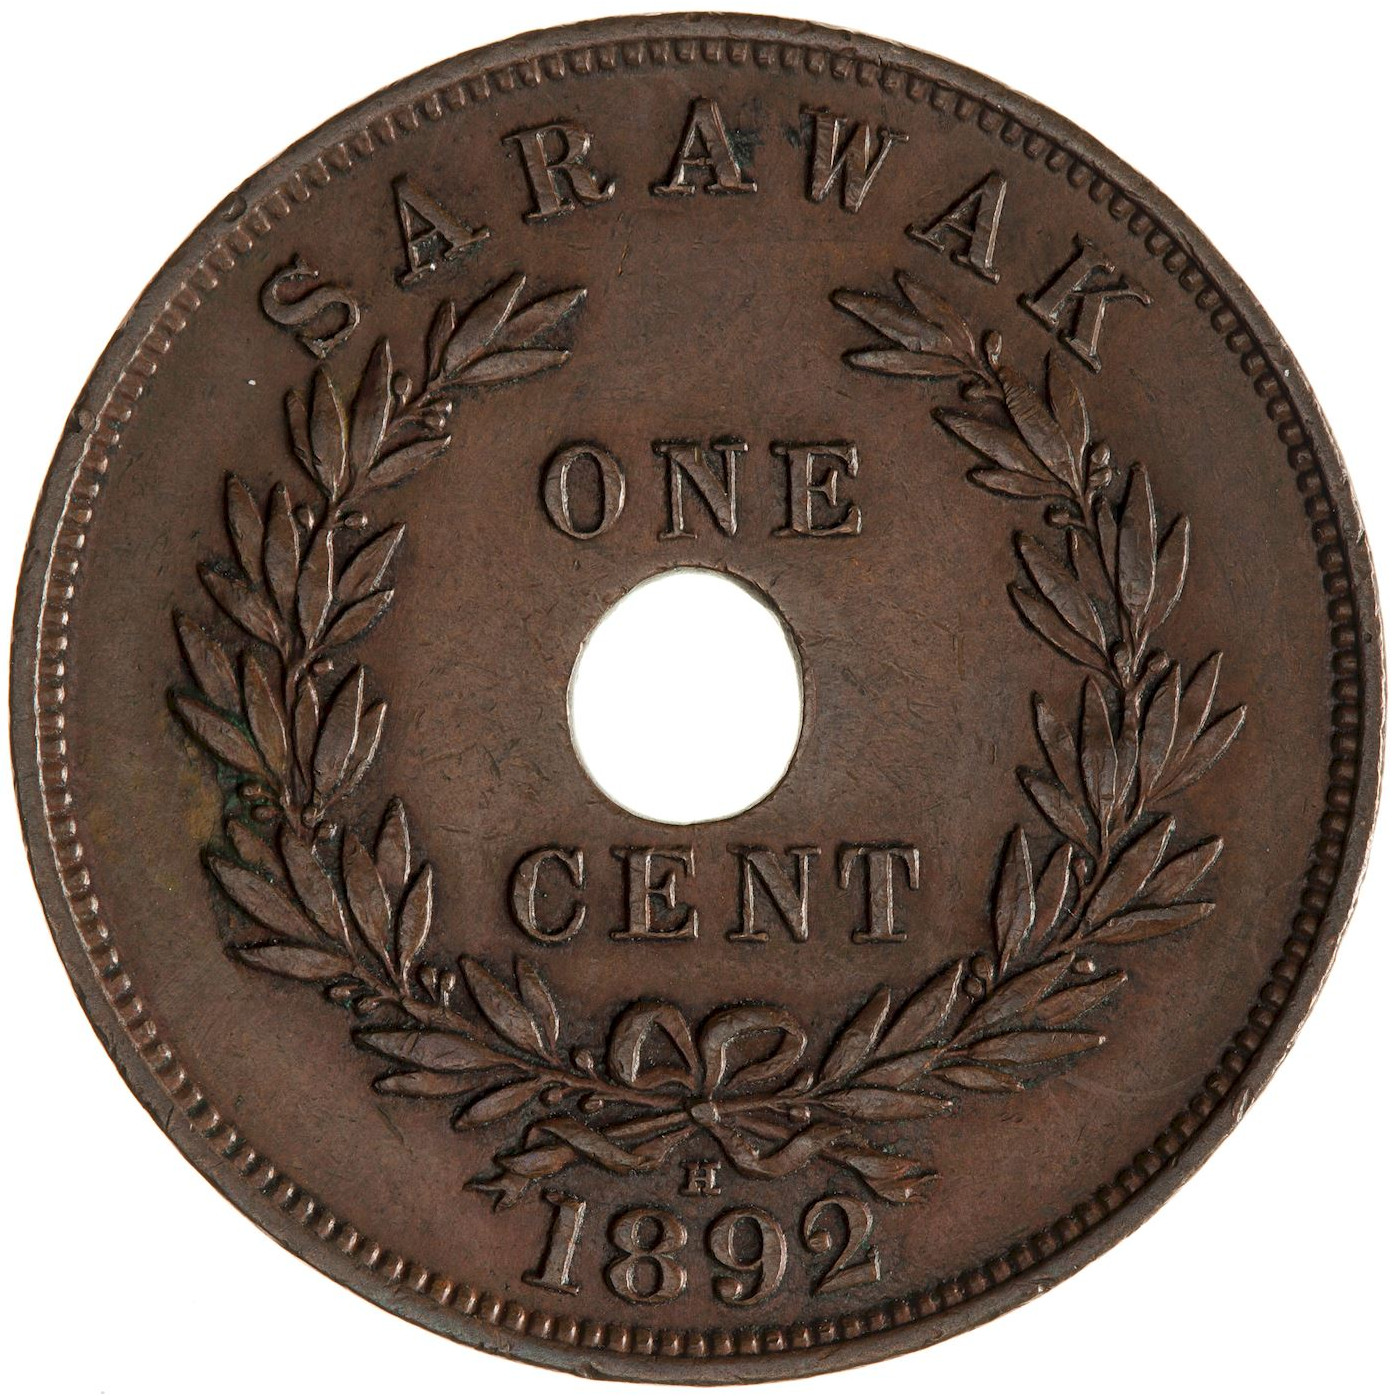 One Cent 1892: Photo Coin - 1 Cent, Sarawak, 1892